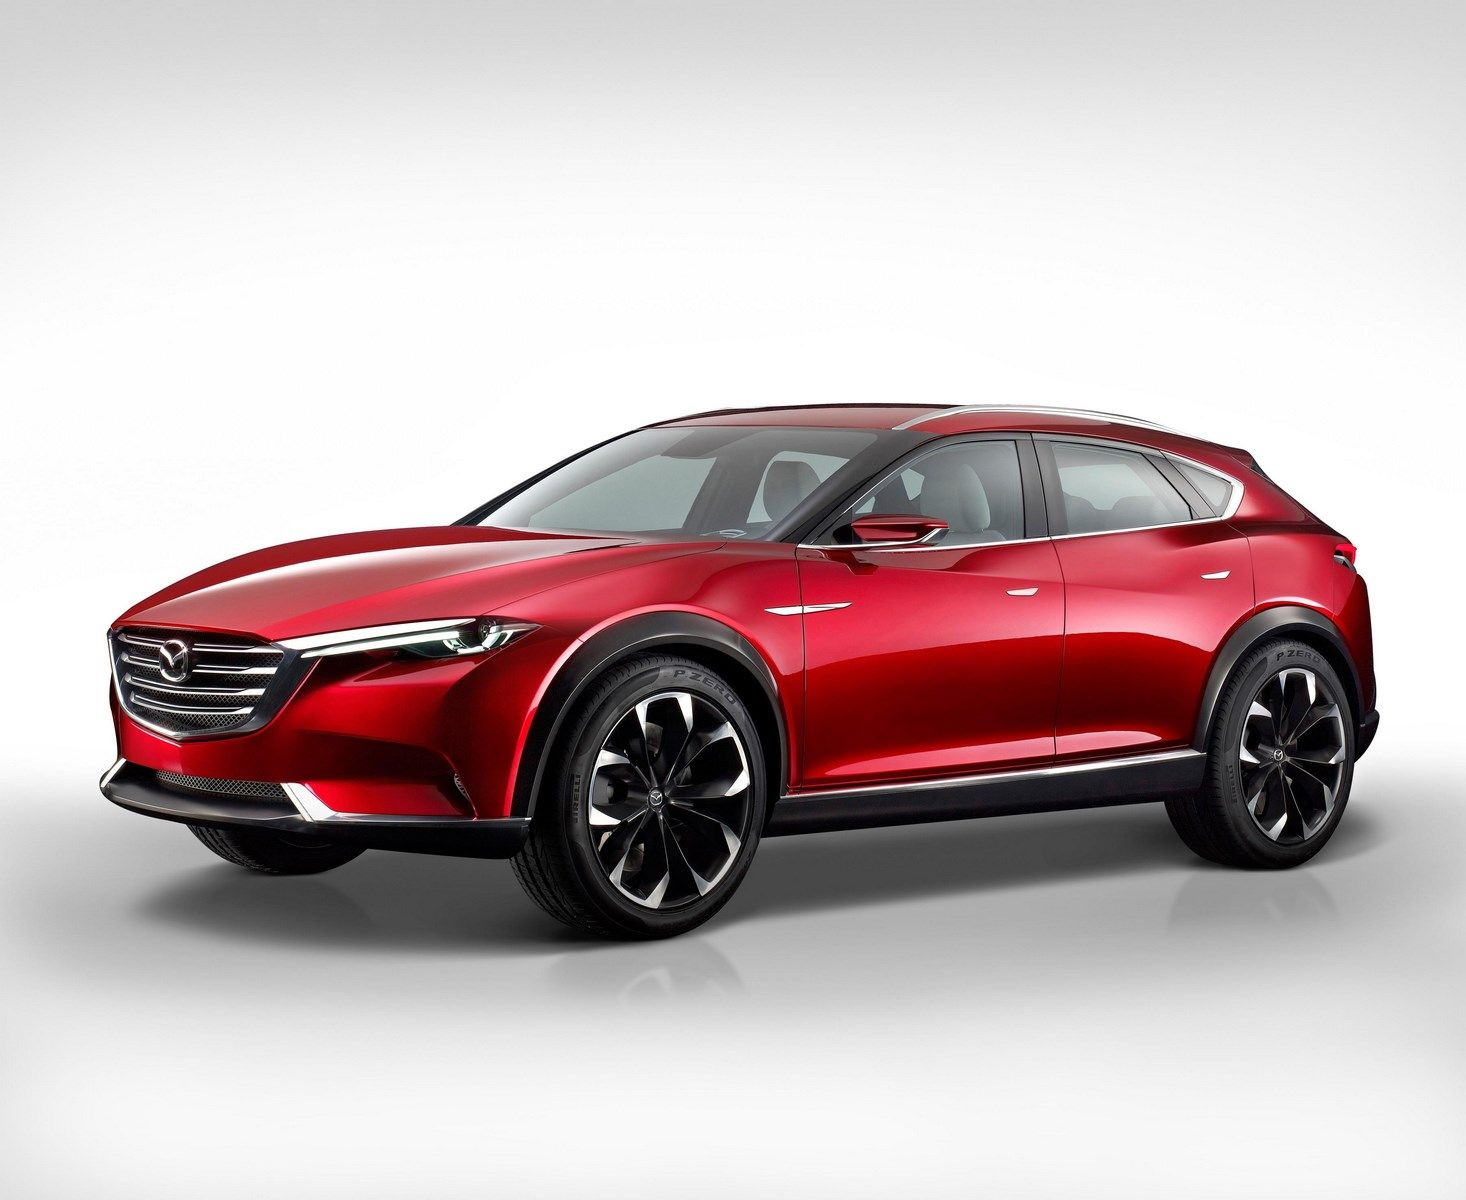 Mazda Cx 4 Cx 6 To Be Sportier Alternative Of Mazda Cx 5 Auto S En Motoren Motor Auto S